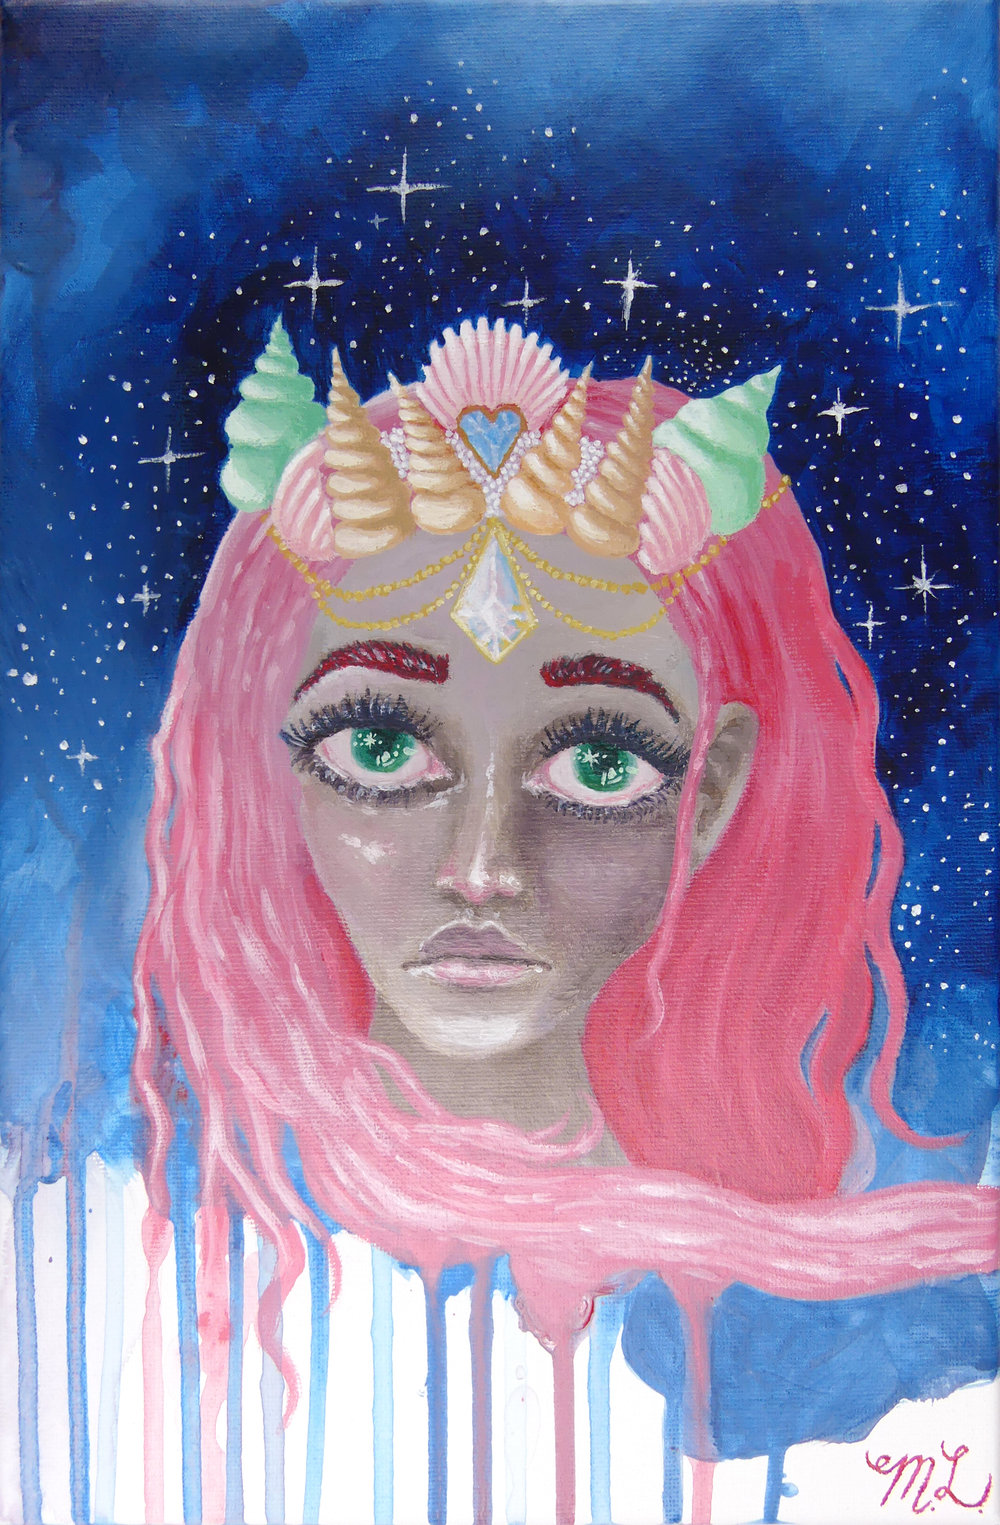 SPACE MERMAID GODDESS